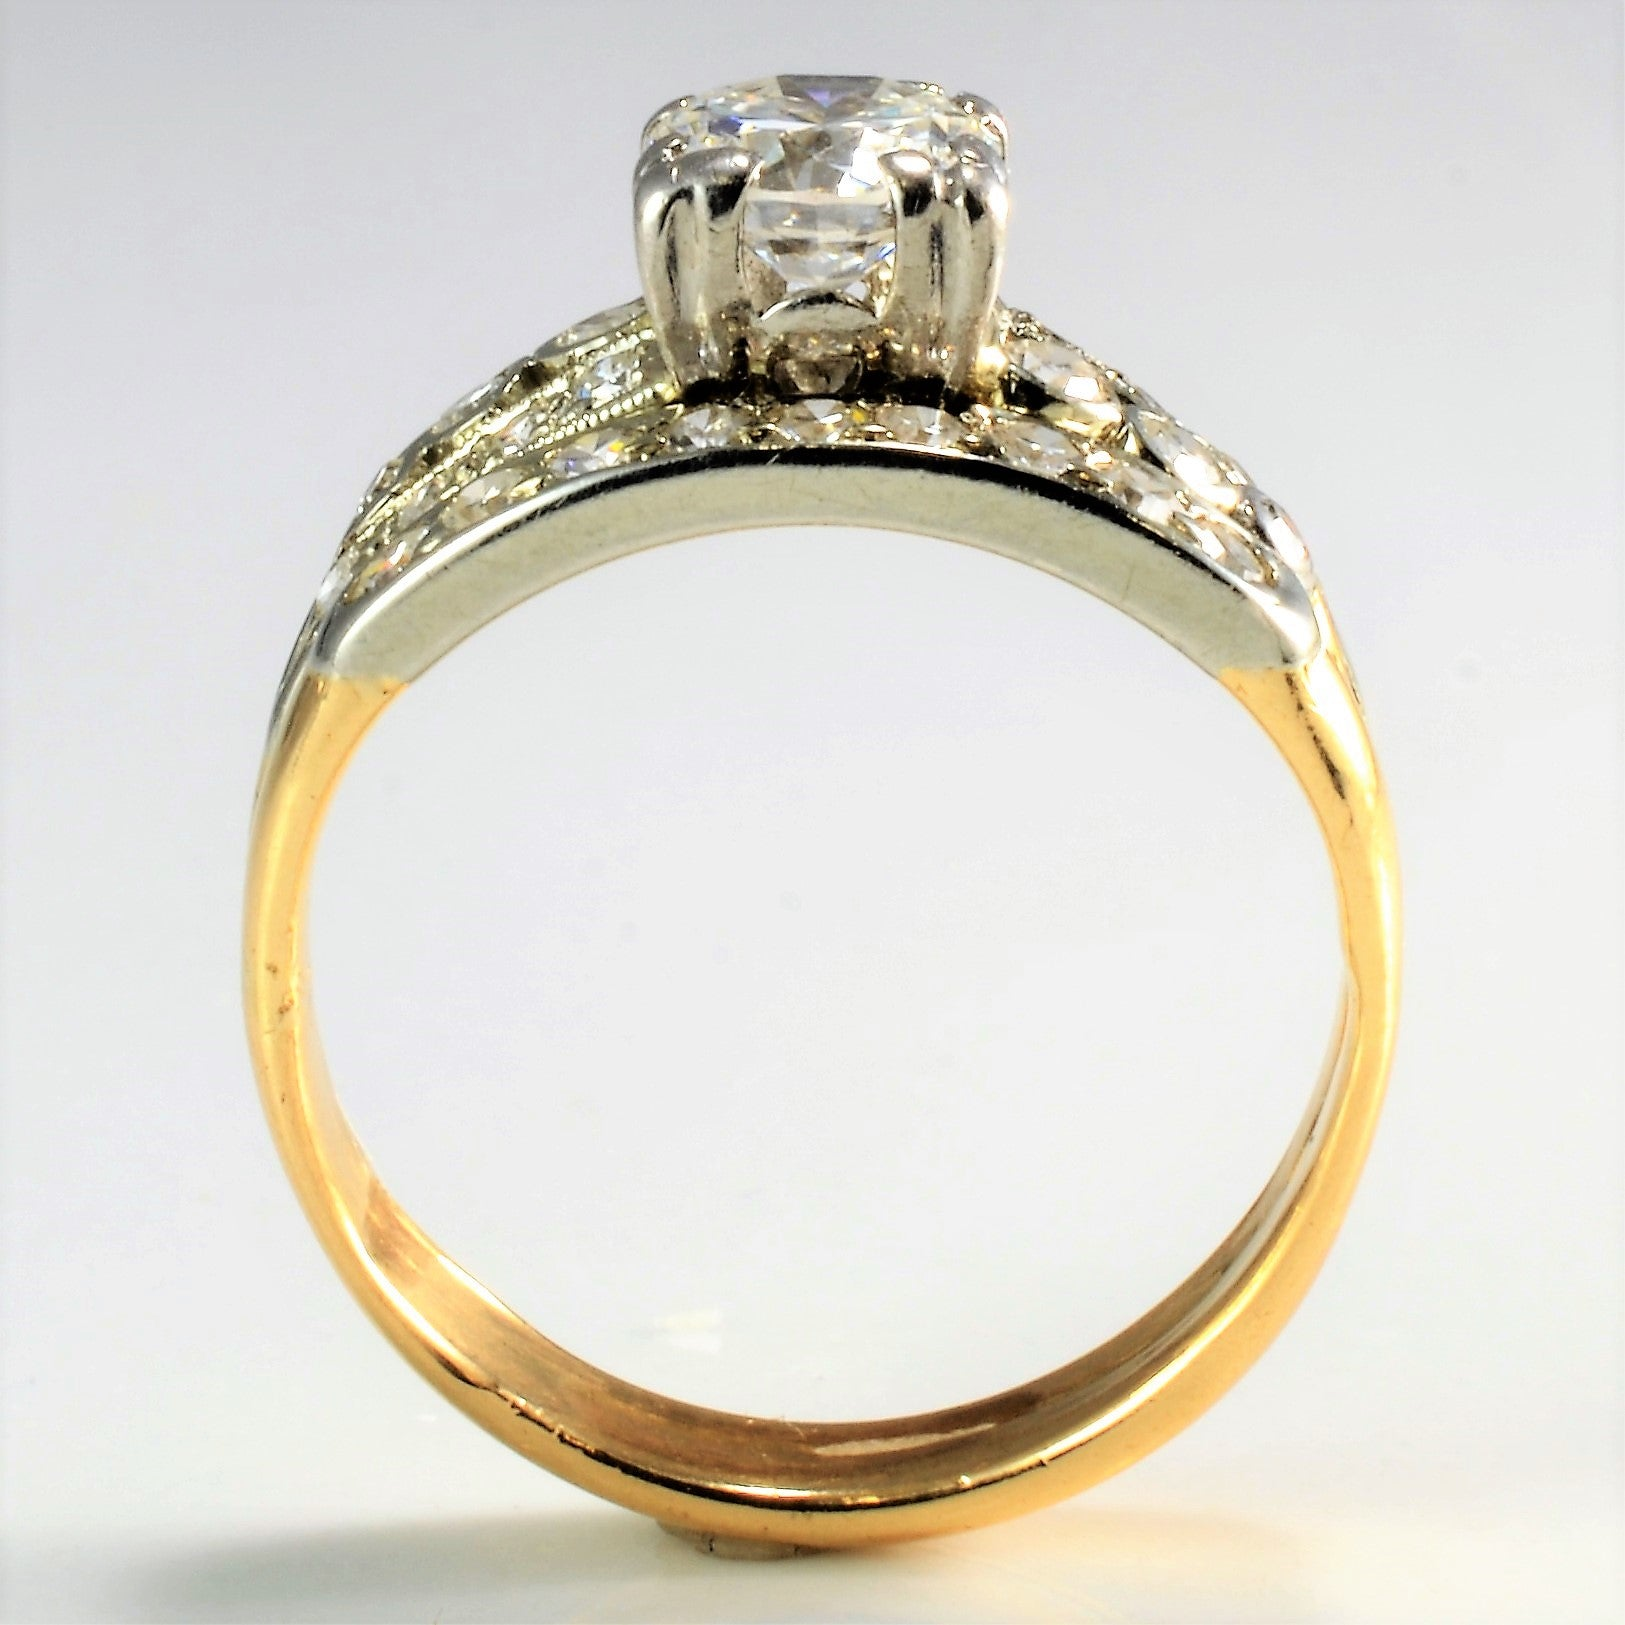 Vintage Diamond Soldered Wedding Set | 0.97 ctw, SZ 5.75 |